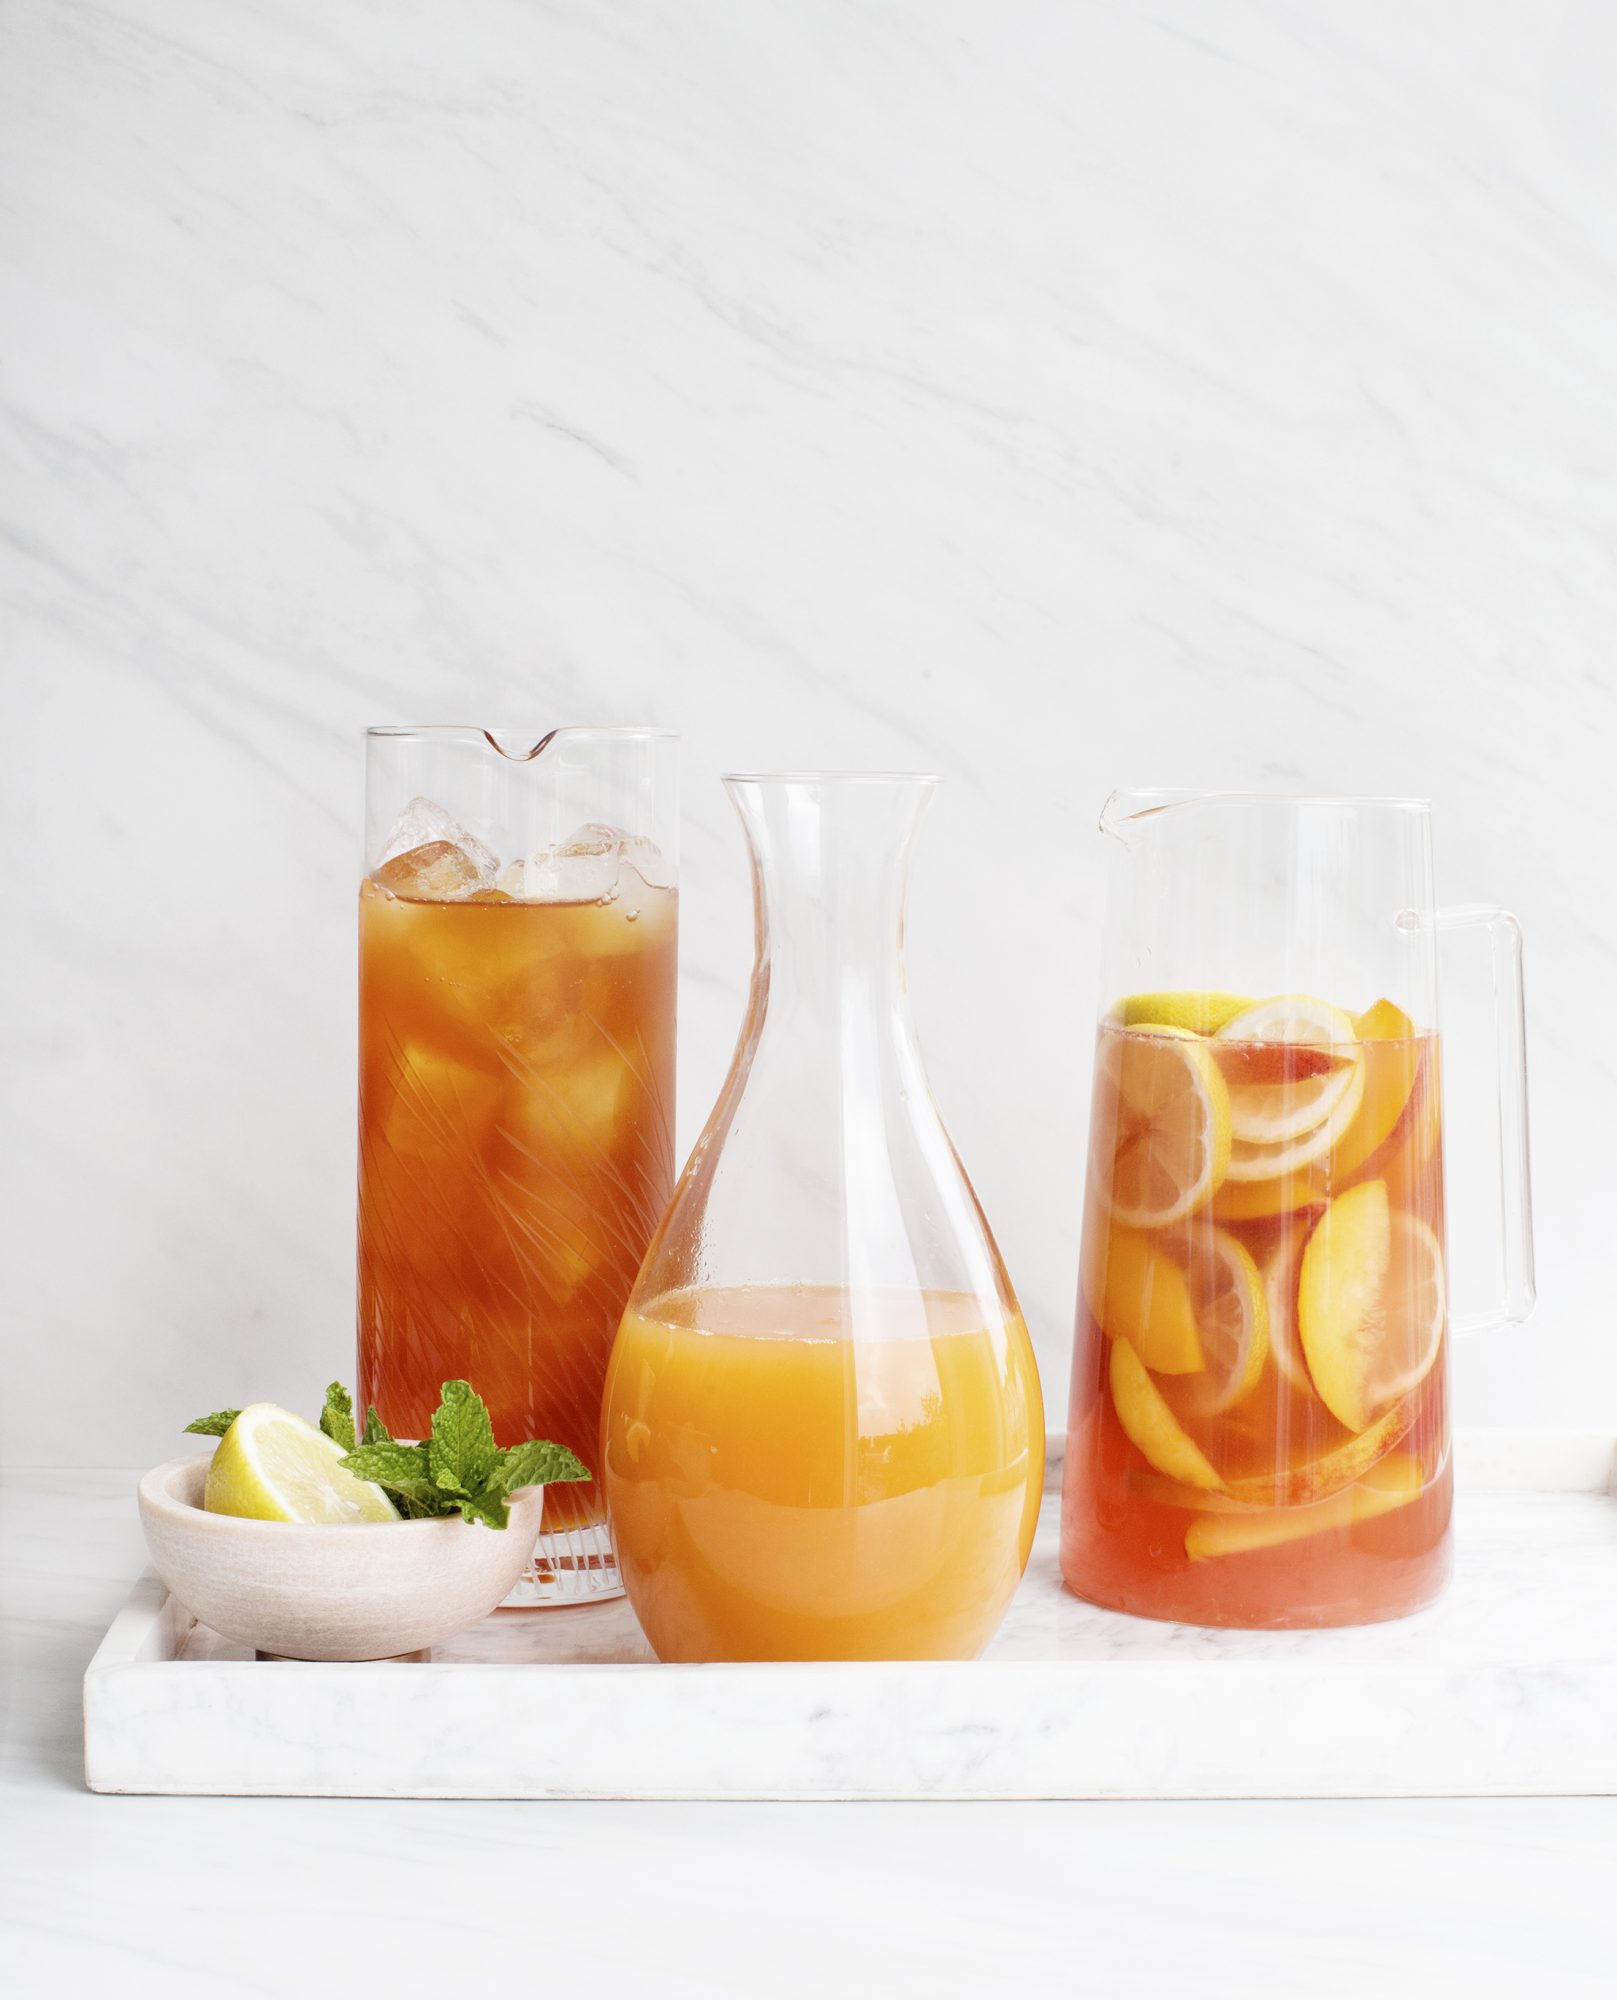 Peach Truck Pitchers - Peach Sweet Tea